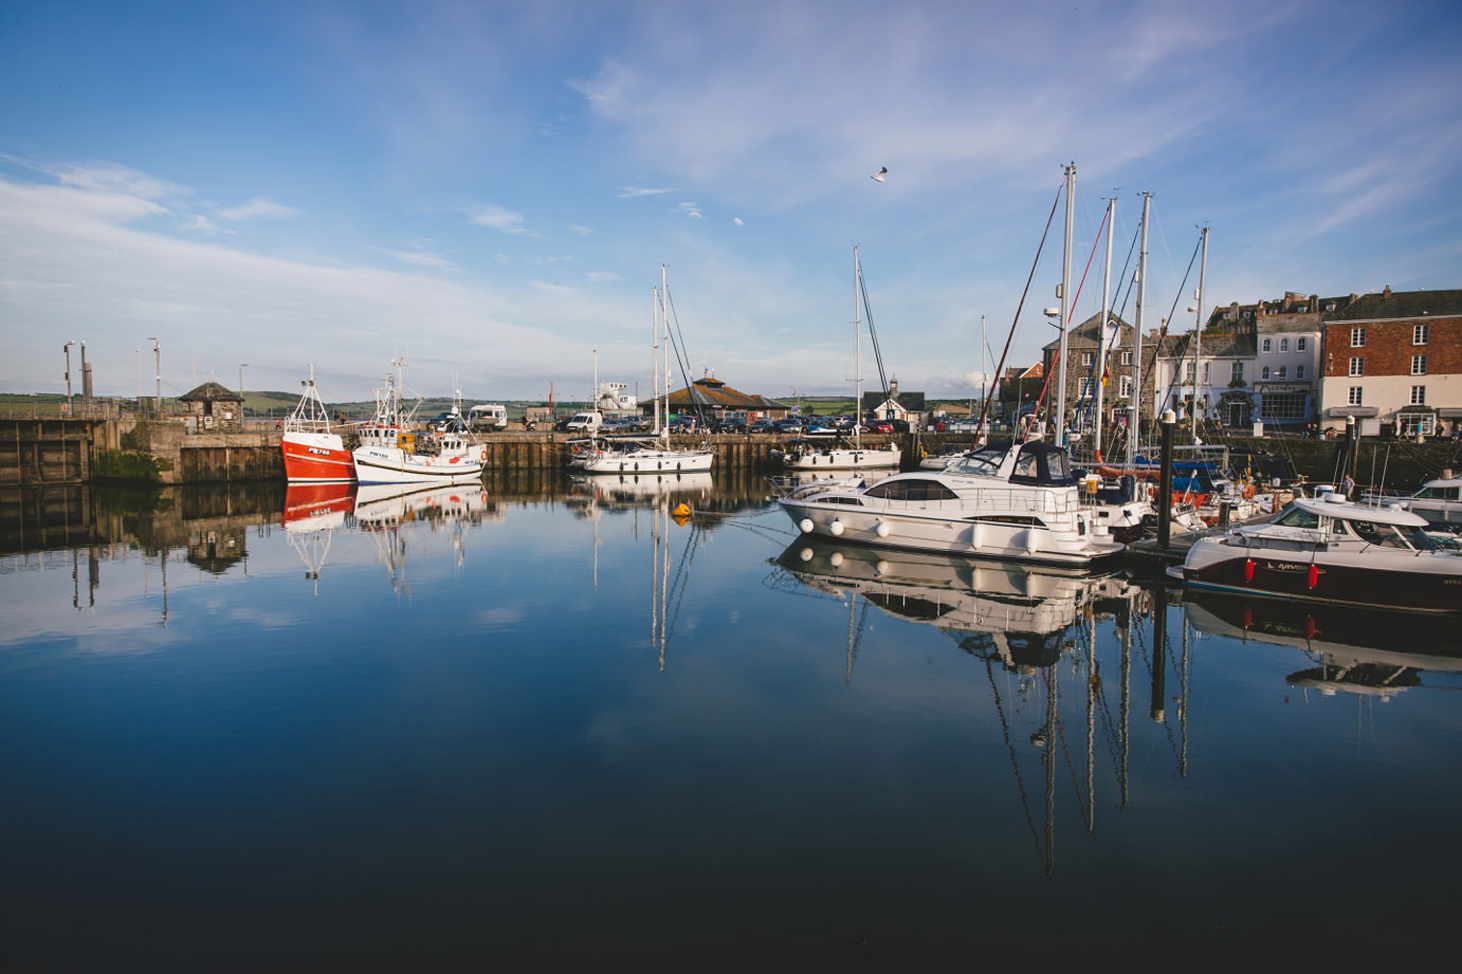 cornwall padstow st ives travel photography saran ann wright 021